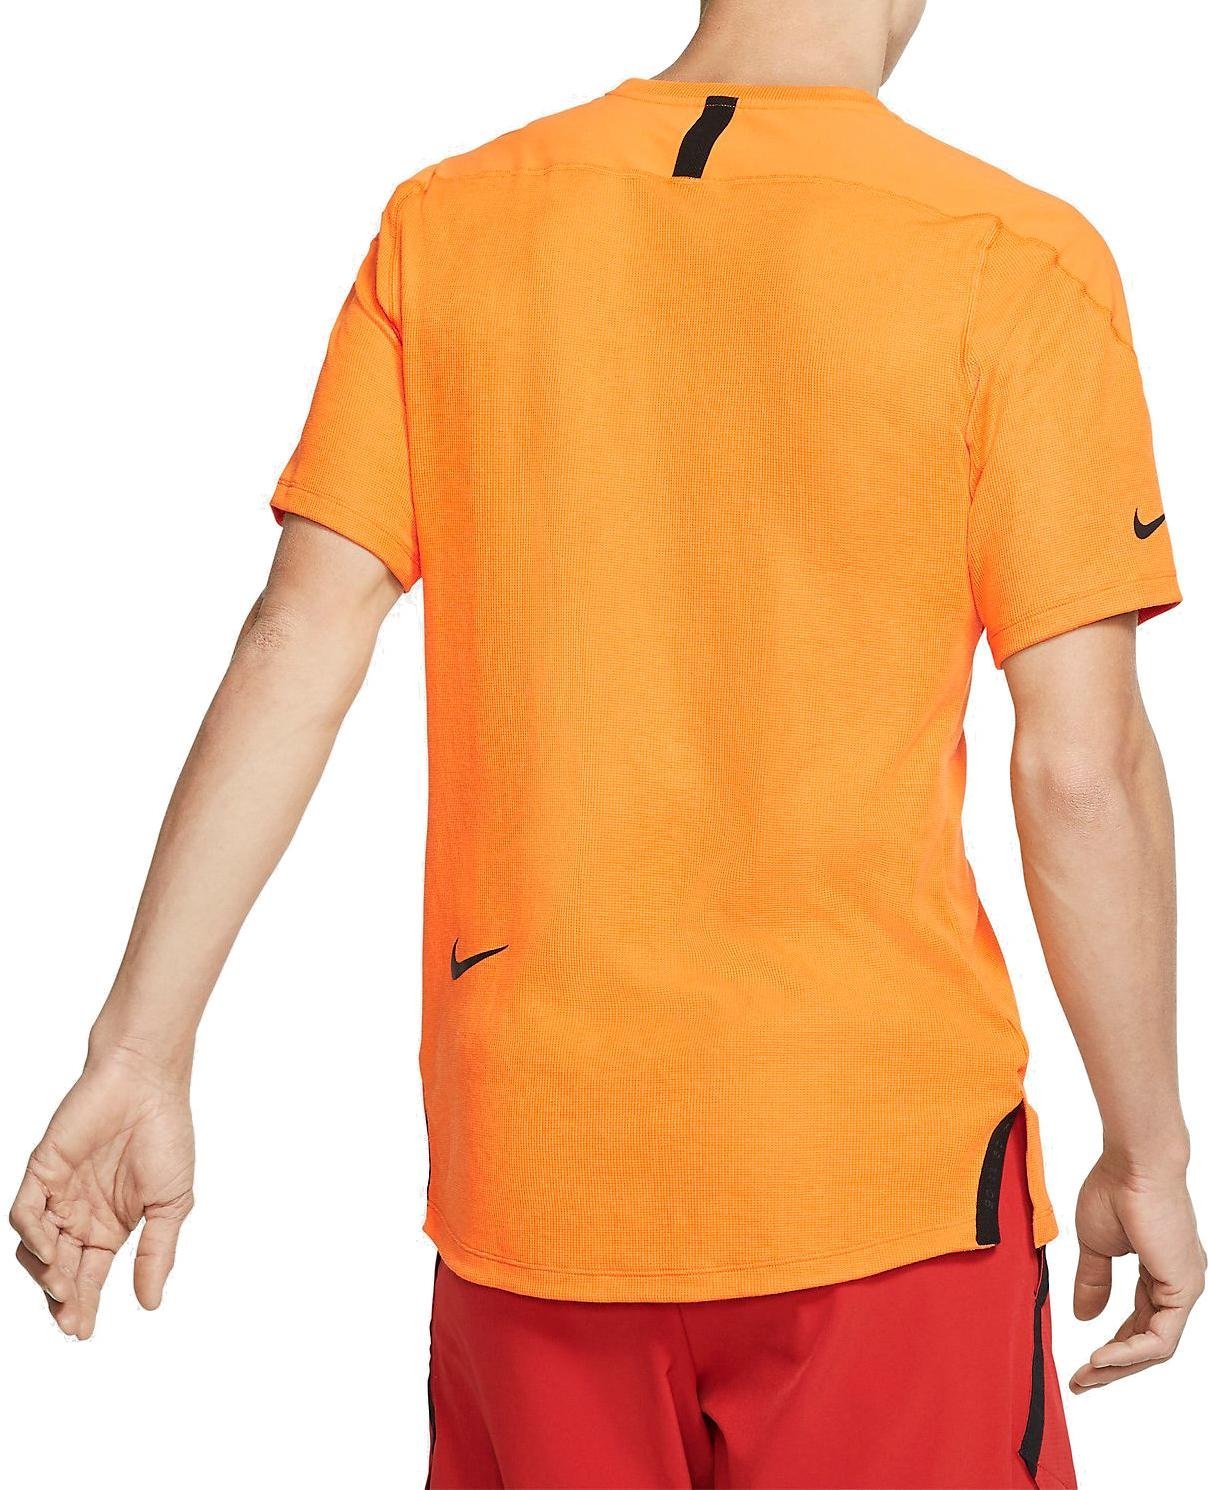 Mens NIKE Tech Pack S/S Top Size Medium  CI8818-886